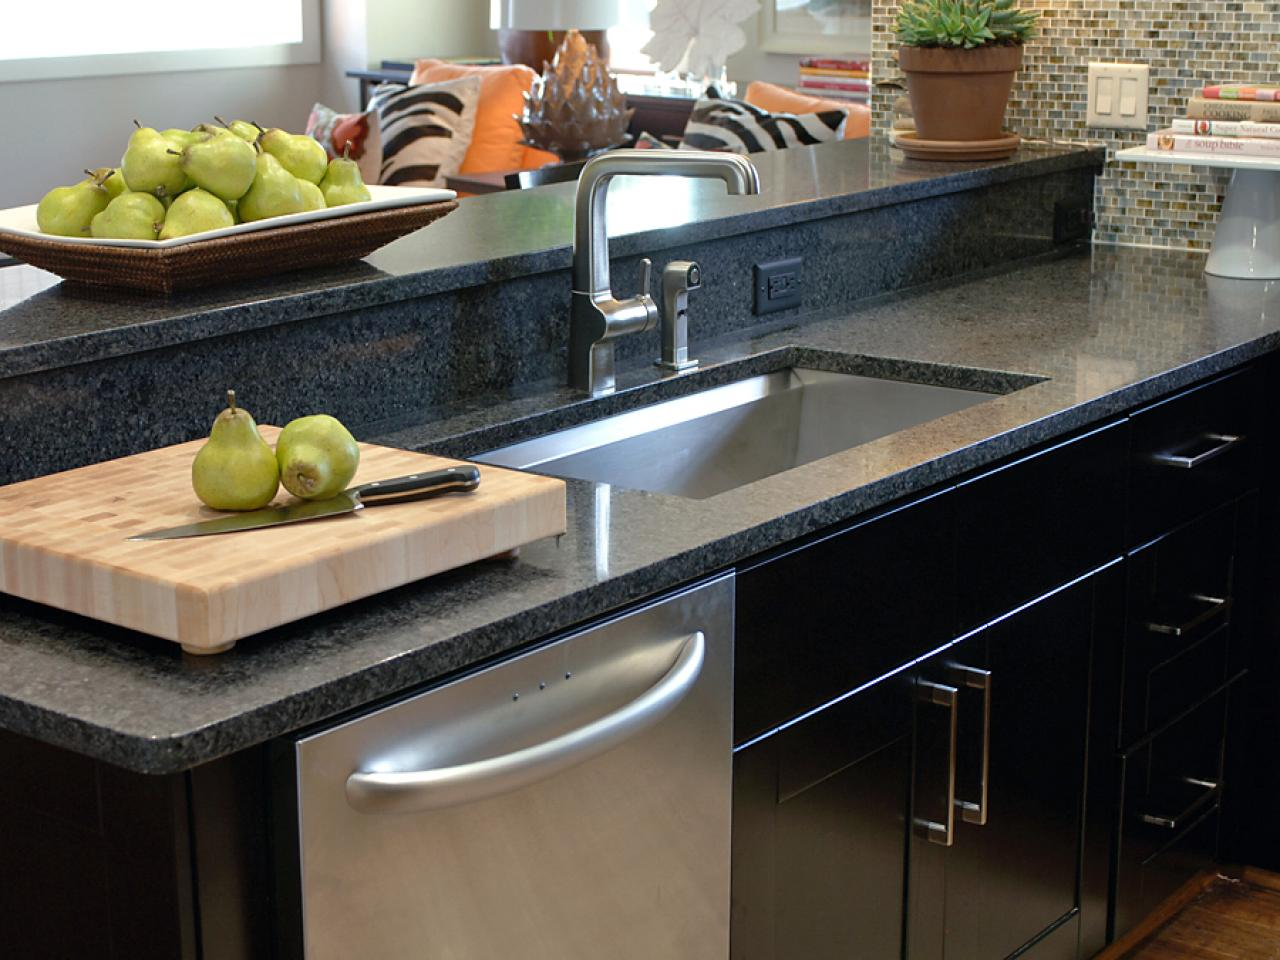 Countertop Kitchen Sink : black countertop and kitchen sink drowning in a sea of kitchen sink ...